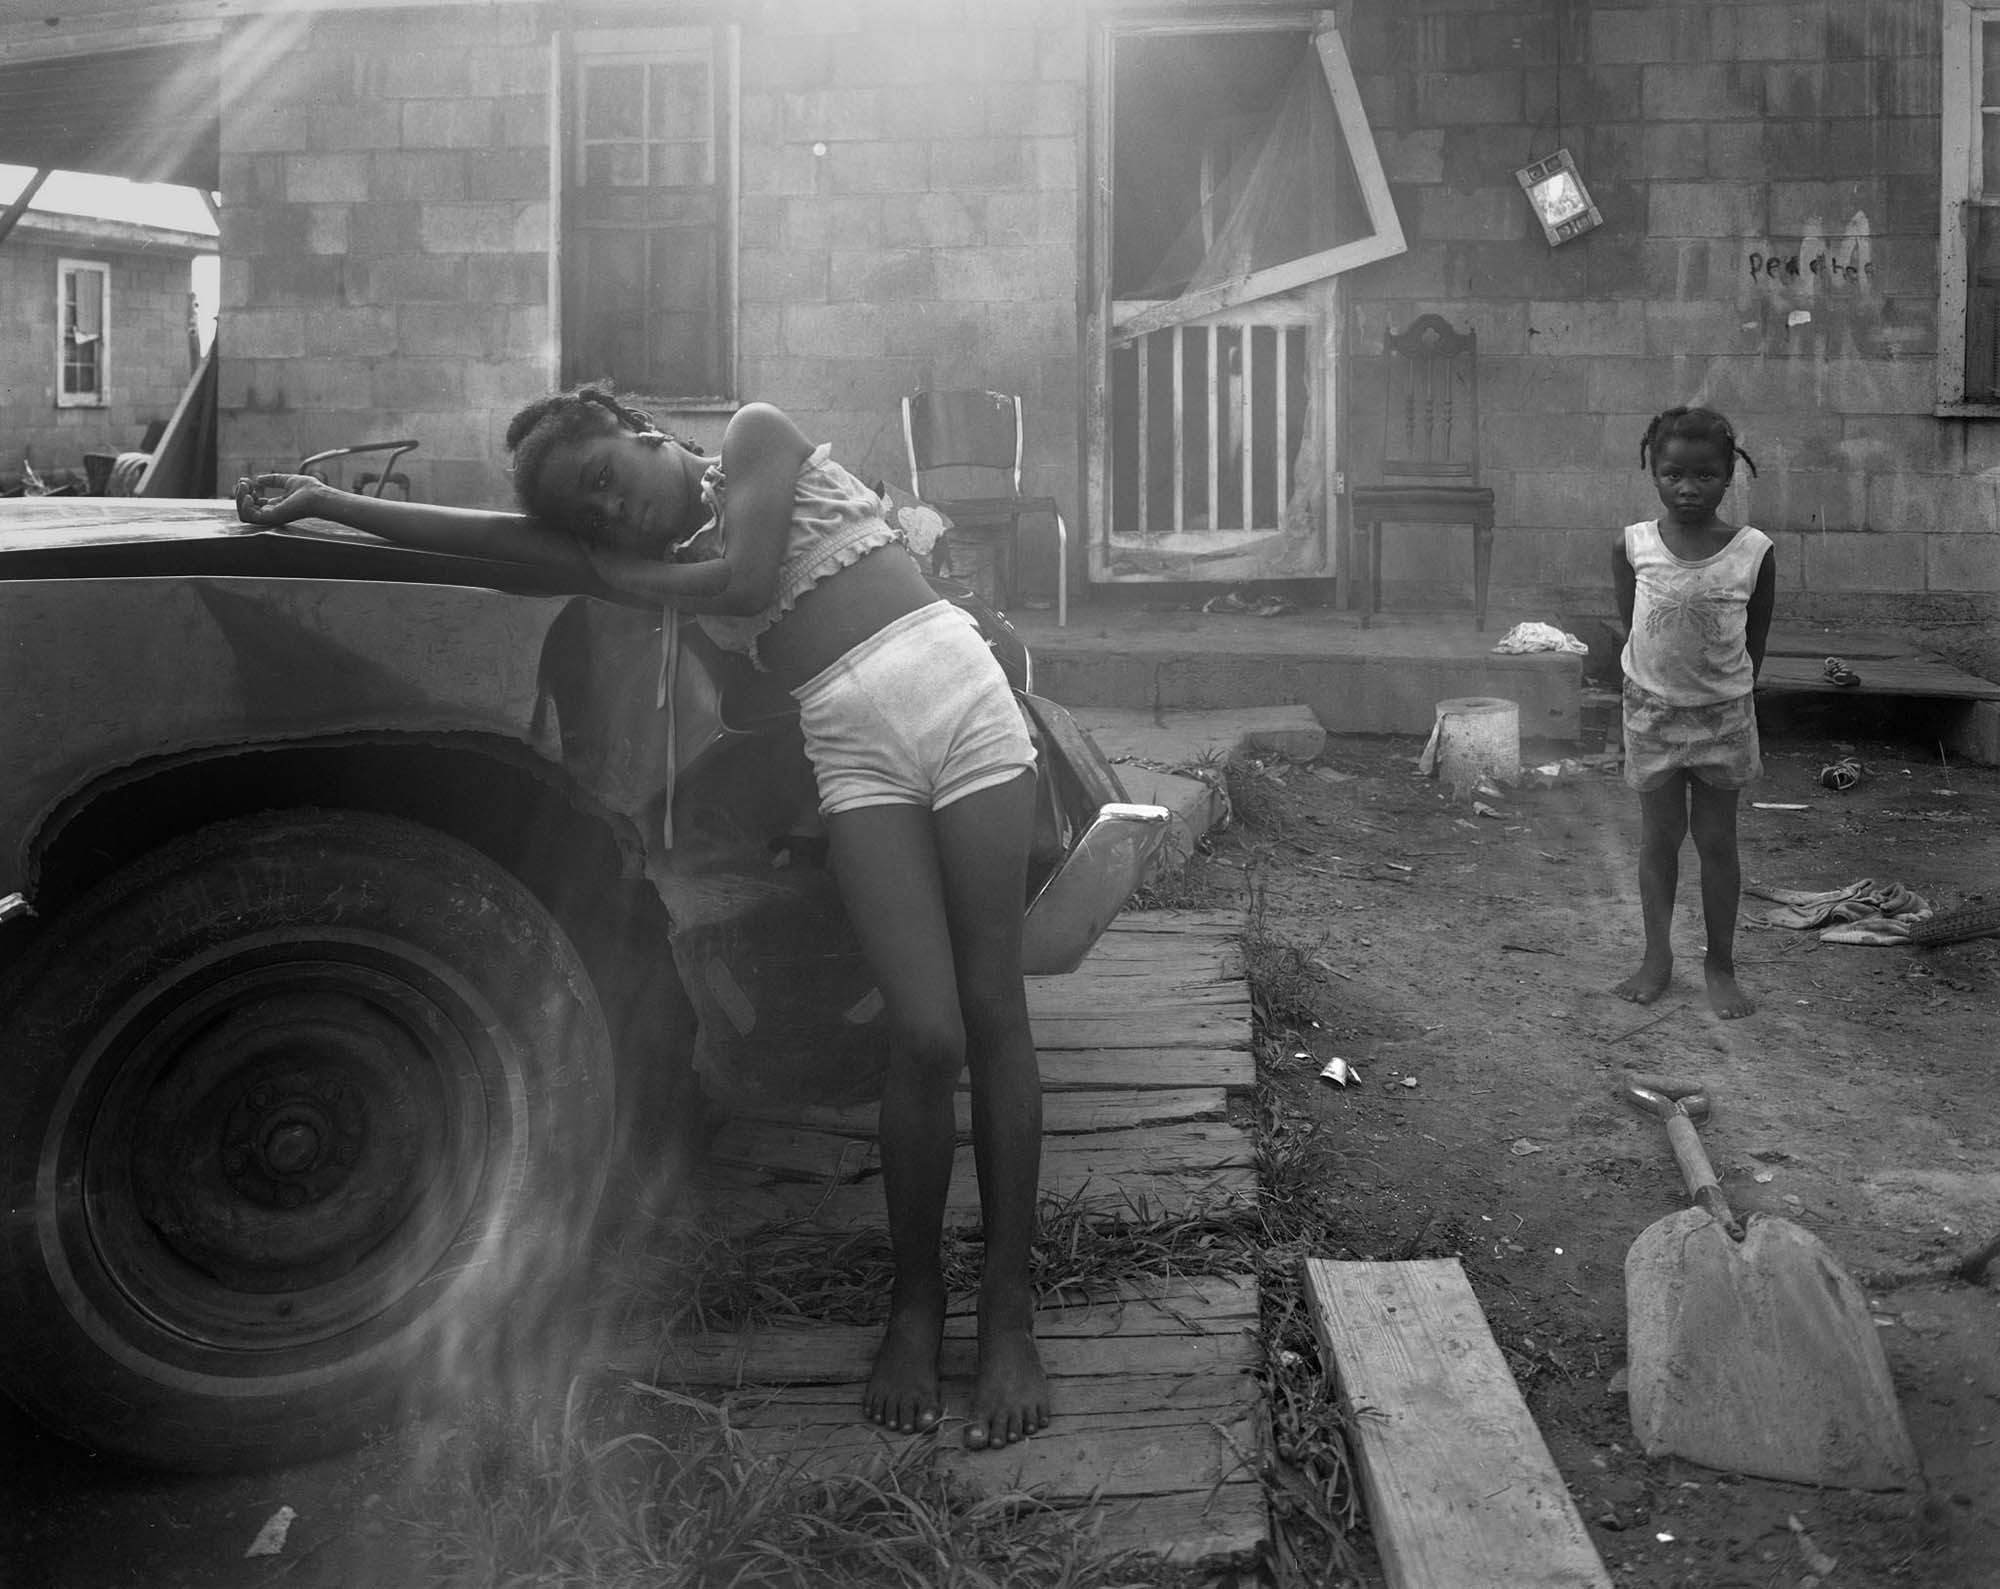 Children and truck, Walls, Ms.,1984.